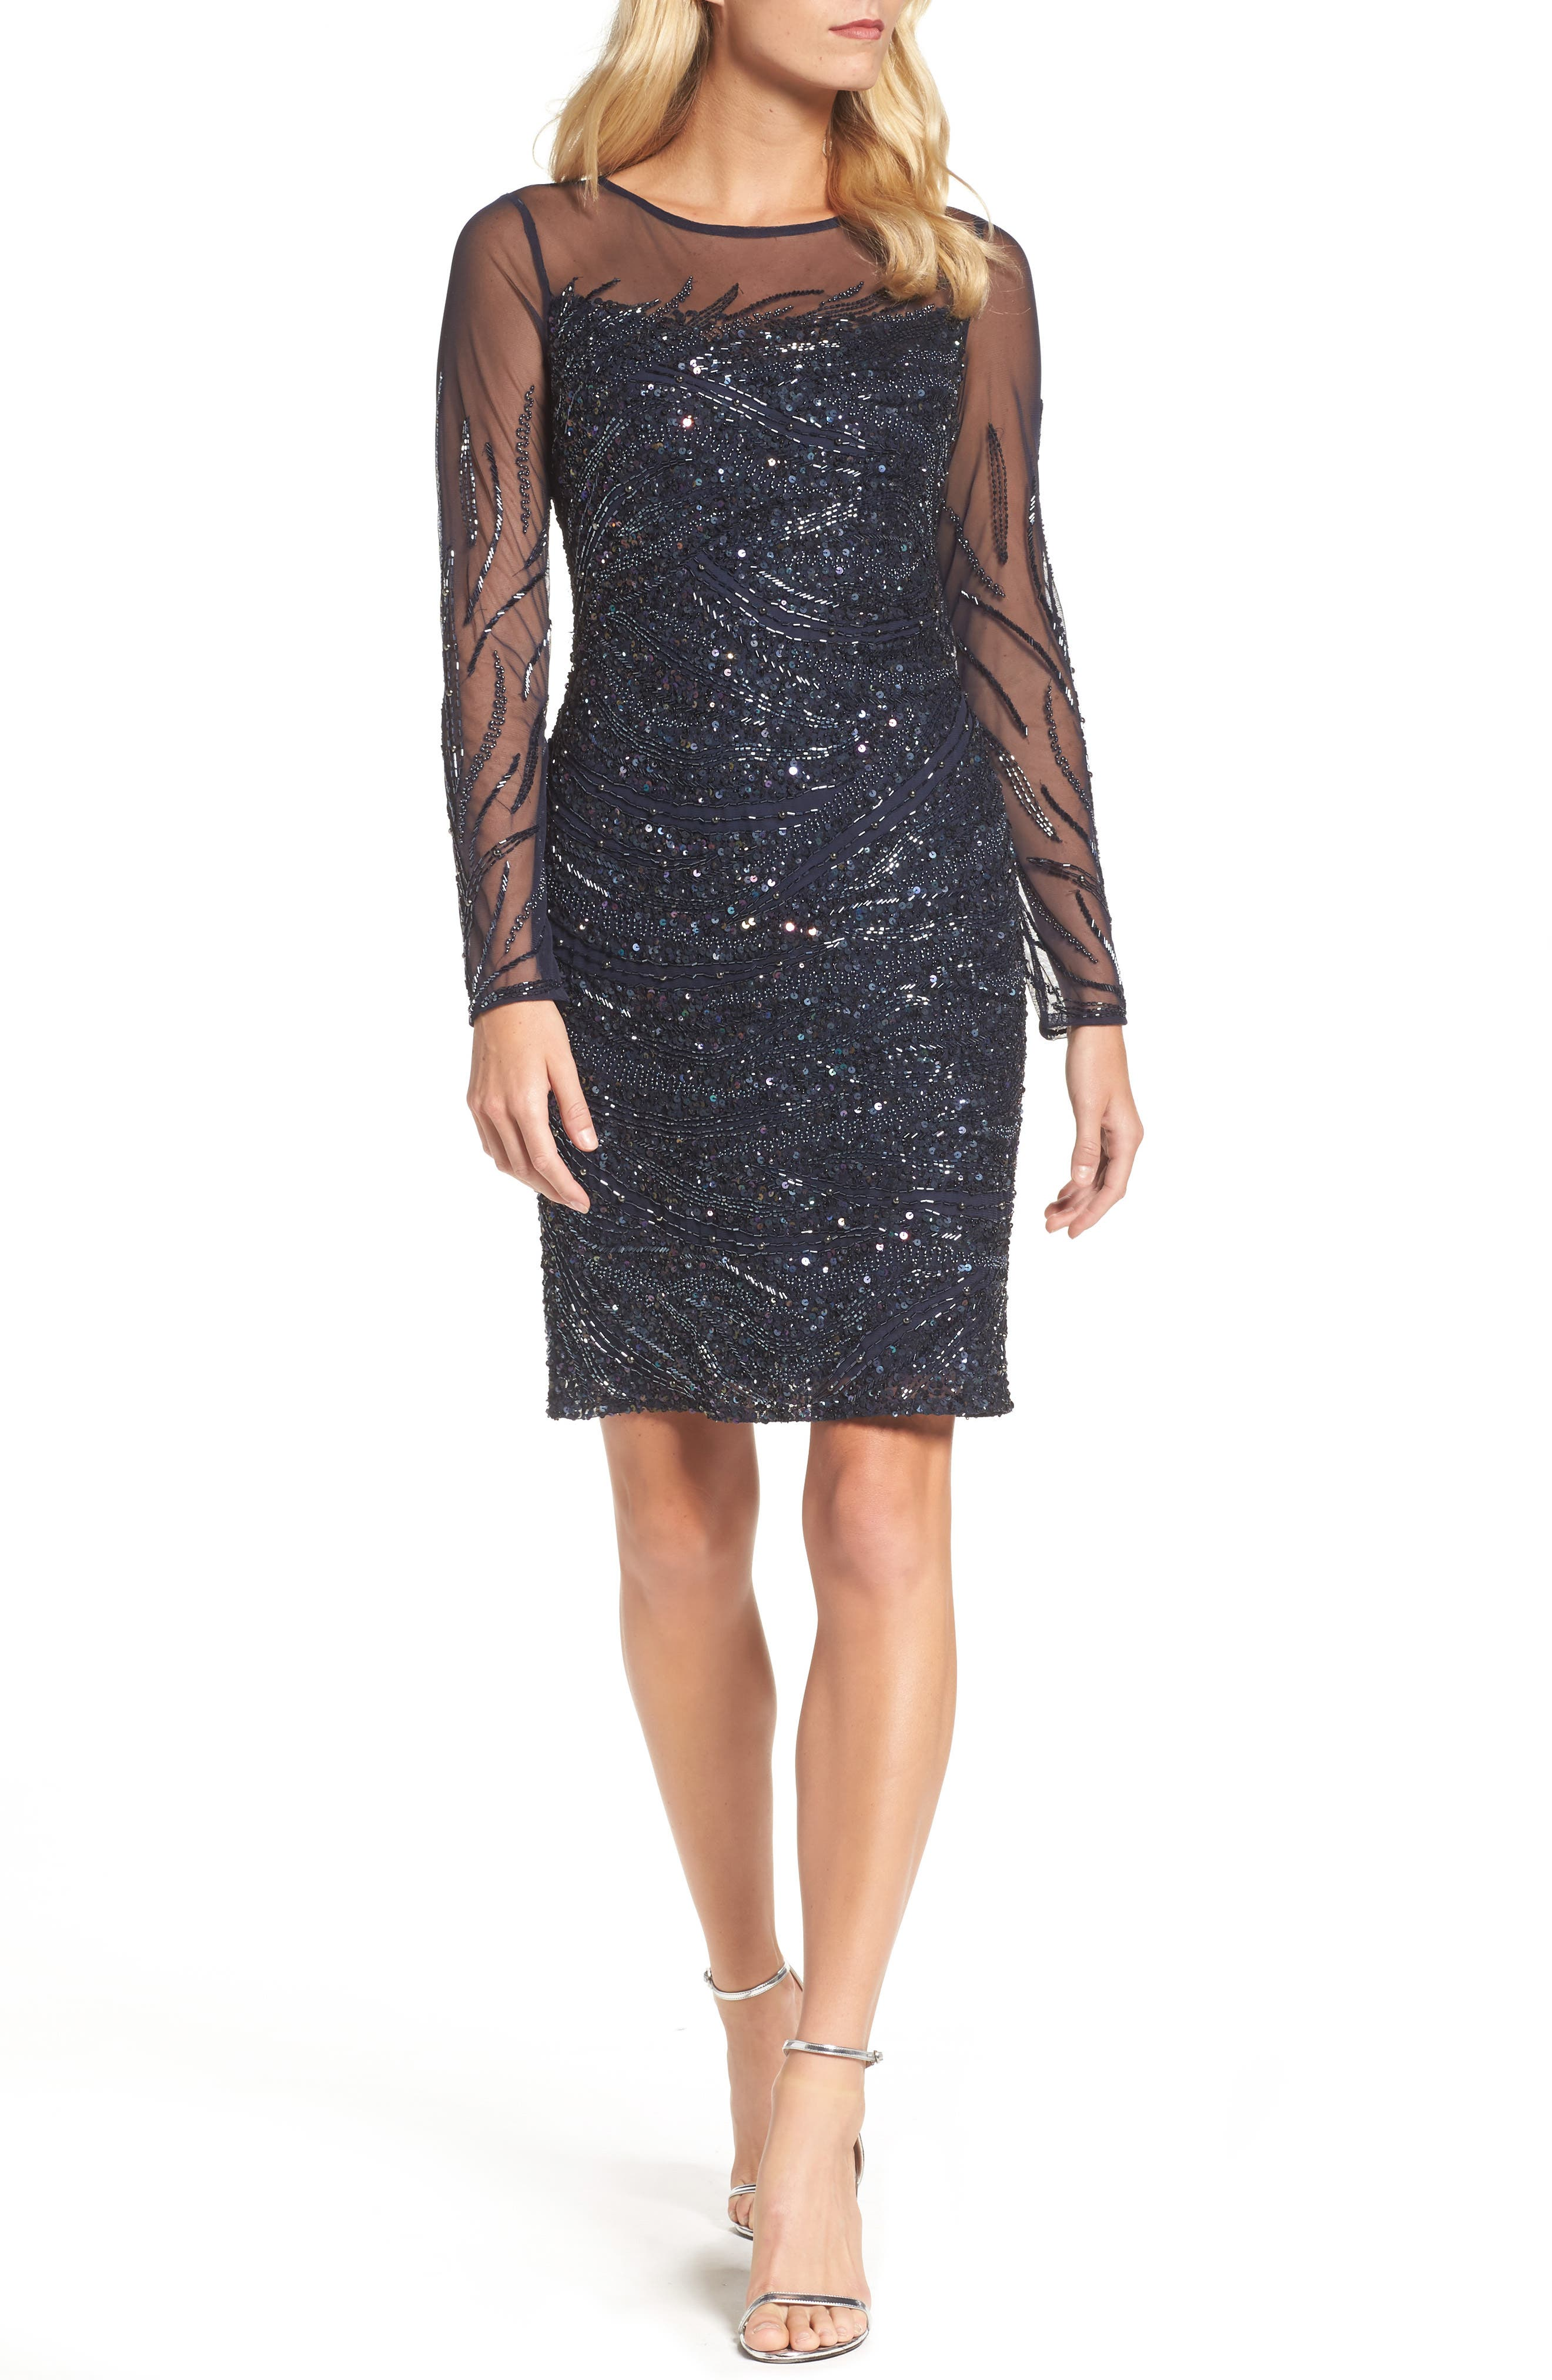 Alternate Image 1 Selected - Adrianna Papell Beaded Illusion Sheath Dress